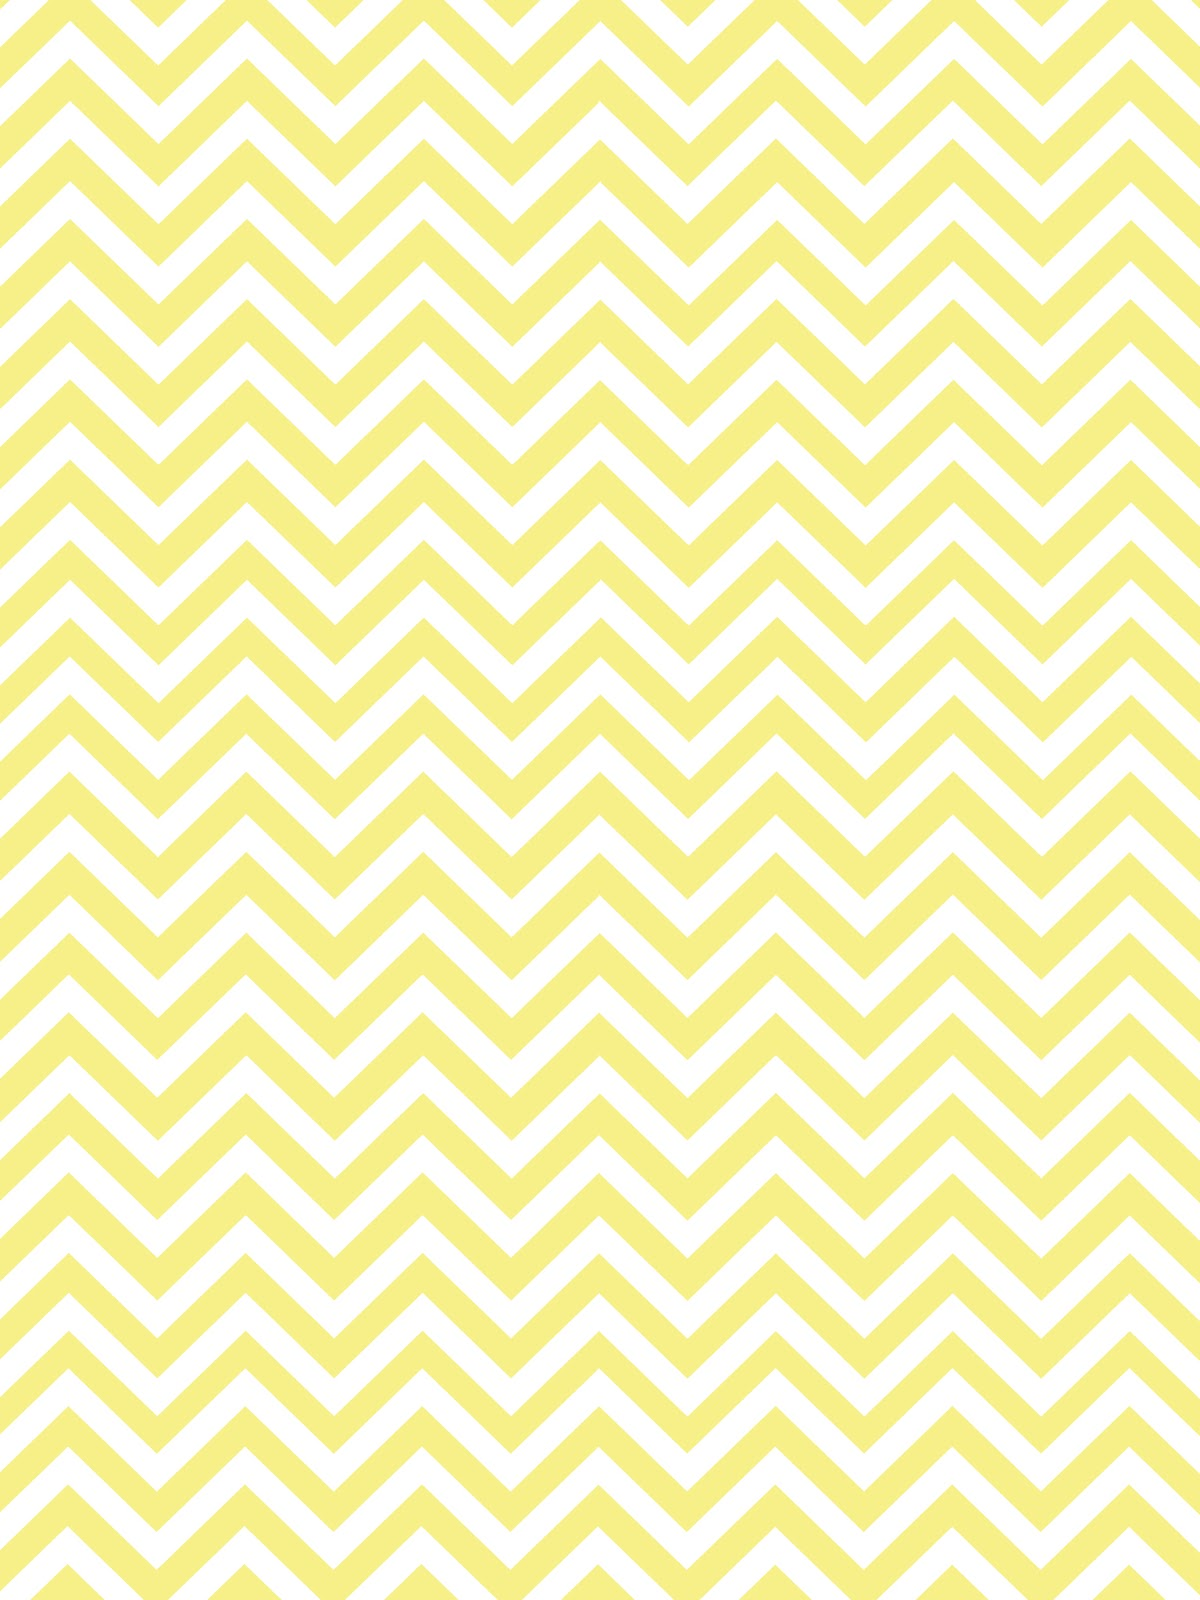 Yellow and blue chevron background